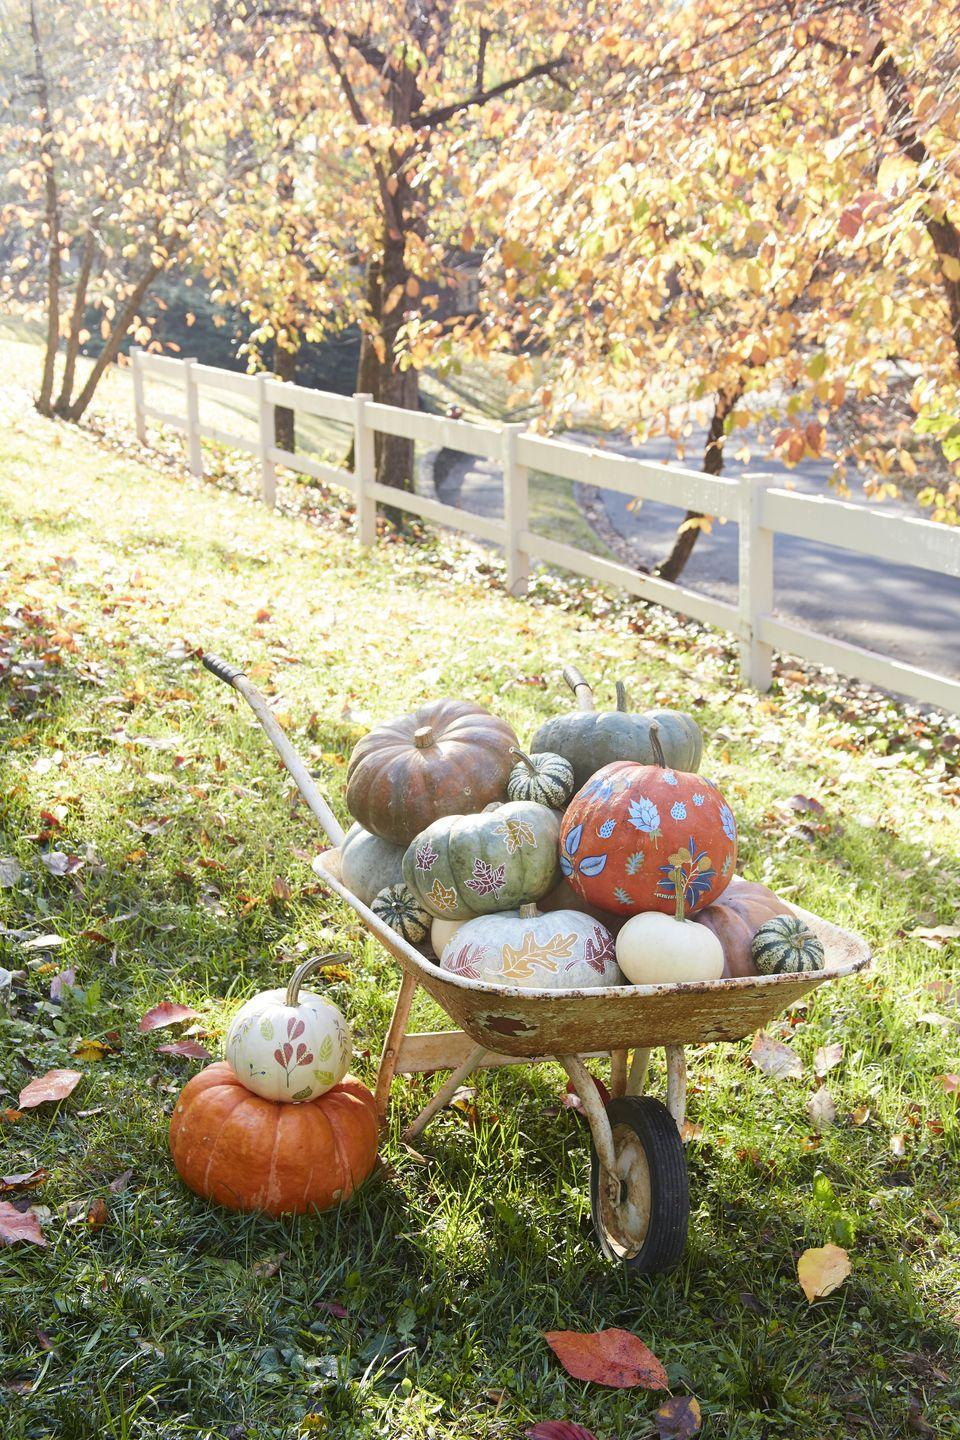 <p>Greet trick-or-treaters and well-wishers with a wheelbarrow stuffed full of painted on and decoupaged leaf motif pumpkins. Bulk up the display with no extra work by including loads of varying size and color pumpkins<strong><br></strong></p><p><strong>Make d</strong><strong>ecoupage leaf pumpkins:</strong> Cut out leaves and flowers from new or vintage wallpaper or wrapping paper. Decoupage to pumpkins using Mod Podge.<strong><br></strong></p><p><strong>Make painted leaf pumpkins:</strong> Use a leaf-shaped stencil to paint fall colored leaves on green, blue, or white pumpkins. Once dry use a white paint pen to outline the leaves, add veining, and decorative details.</p><p> </p><p>  </p><p>  </p><p>  </p>